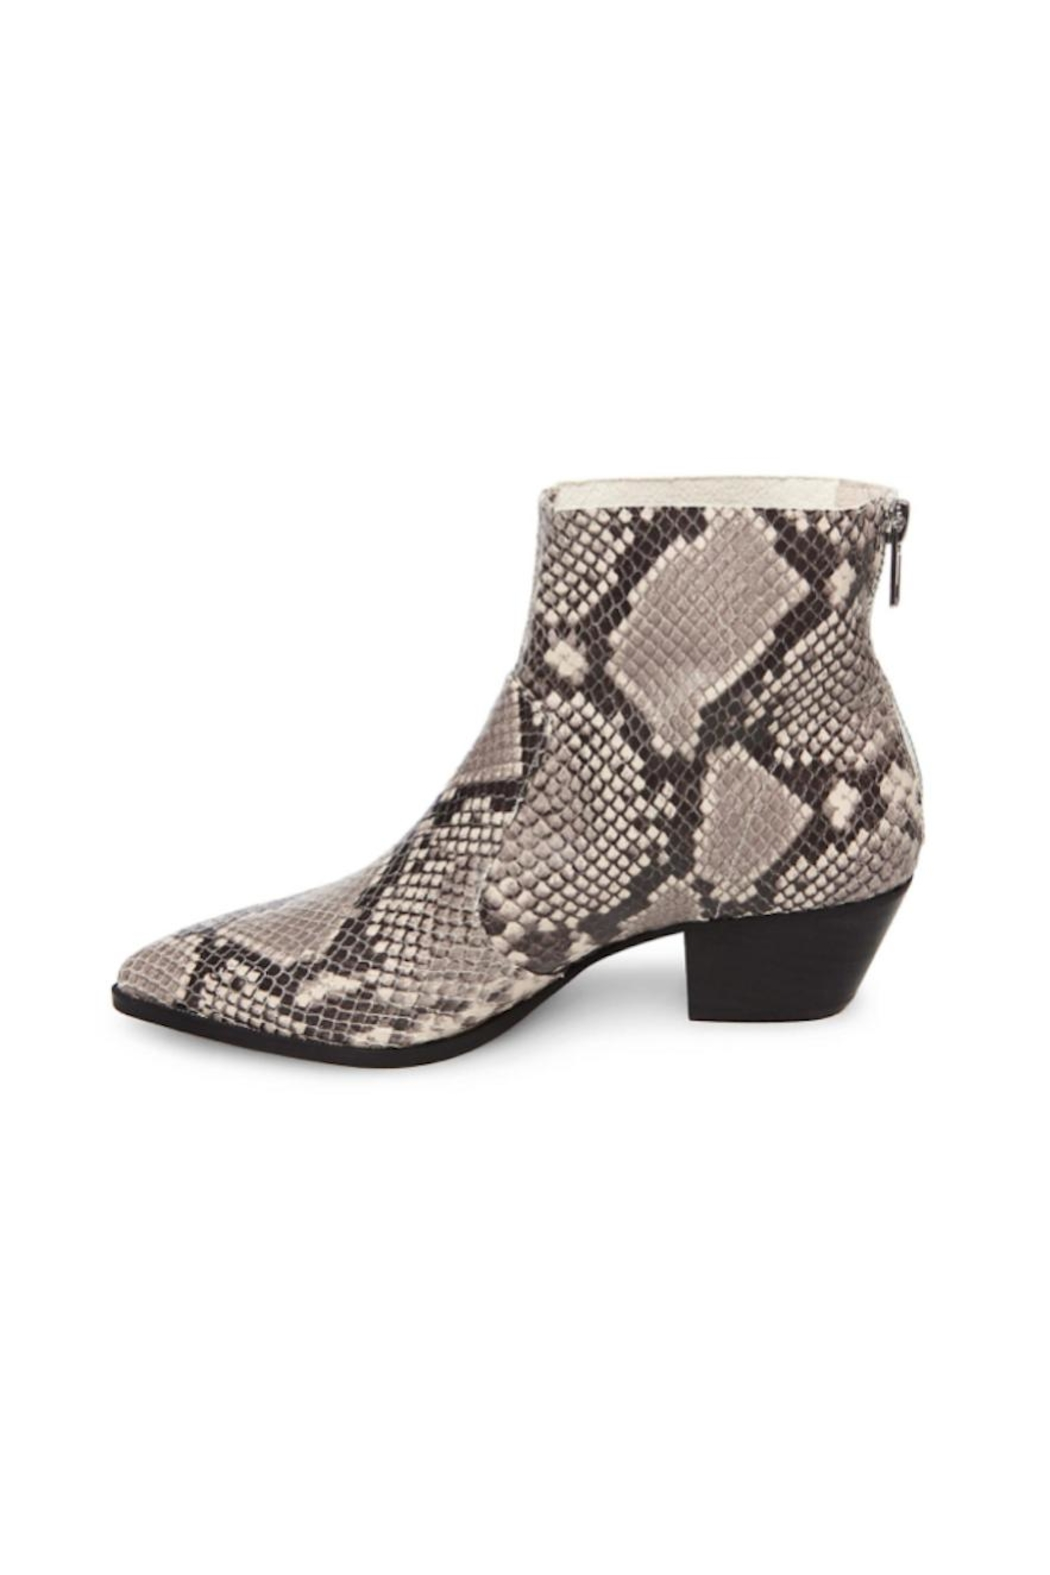 33408039a19 Steve Madden Cafe Snake Boots from New Jersey by The House — Shoptiques